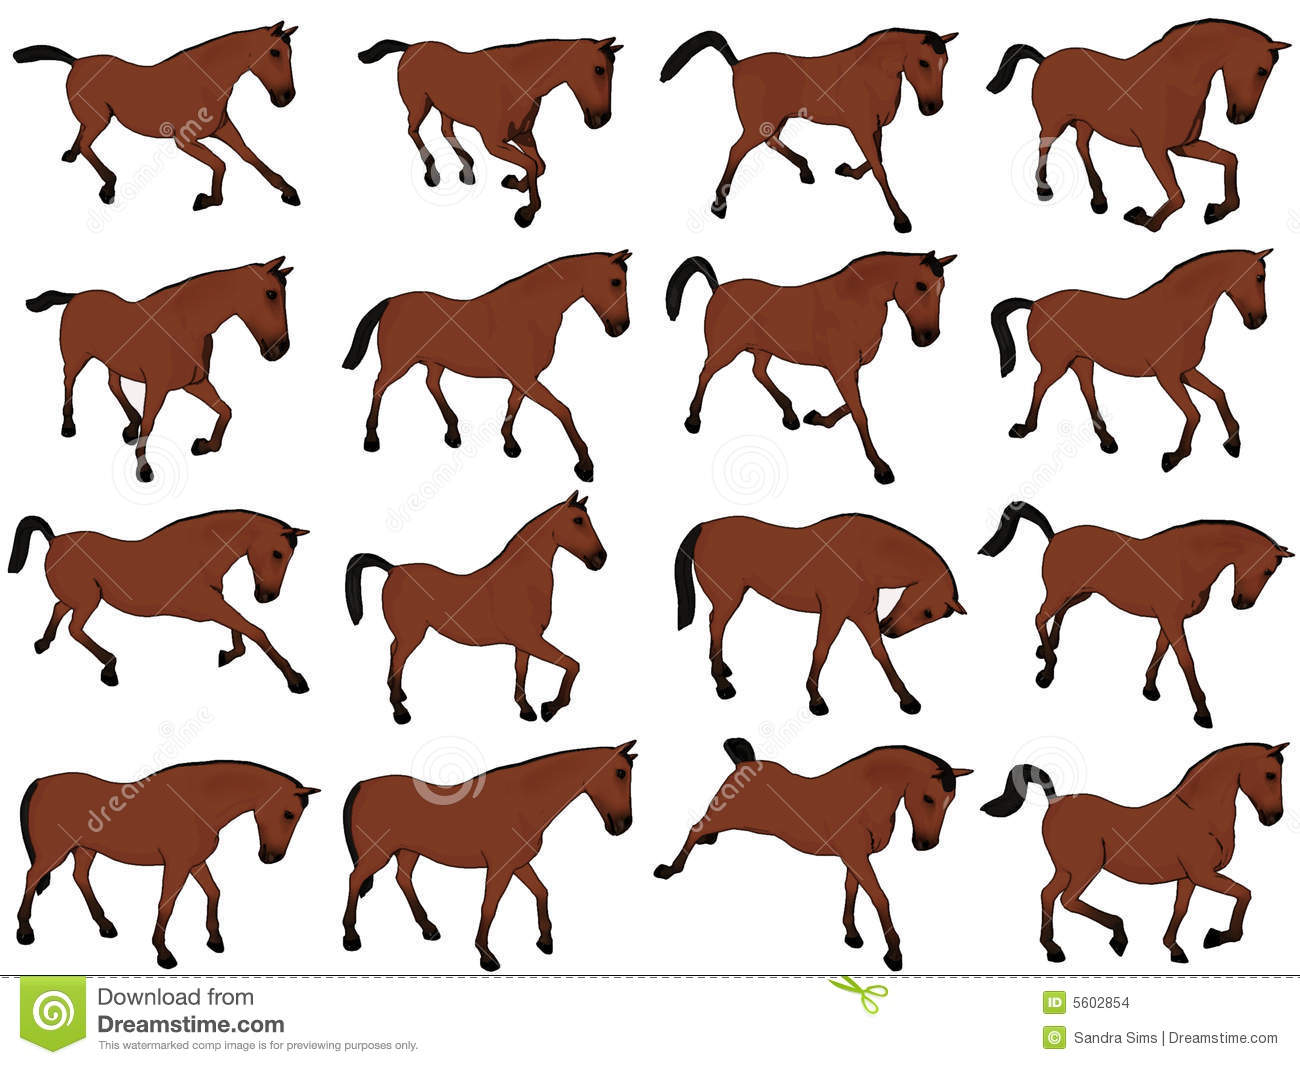 Stock Images Cartoon Horse Assorted Poses Image5602854 on computer generated artwork